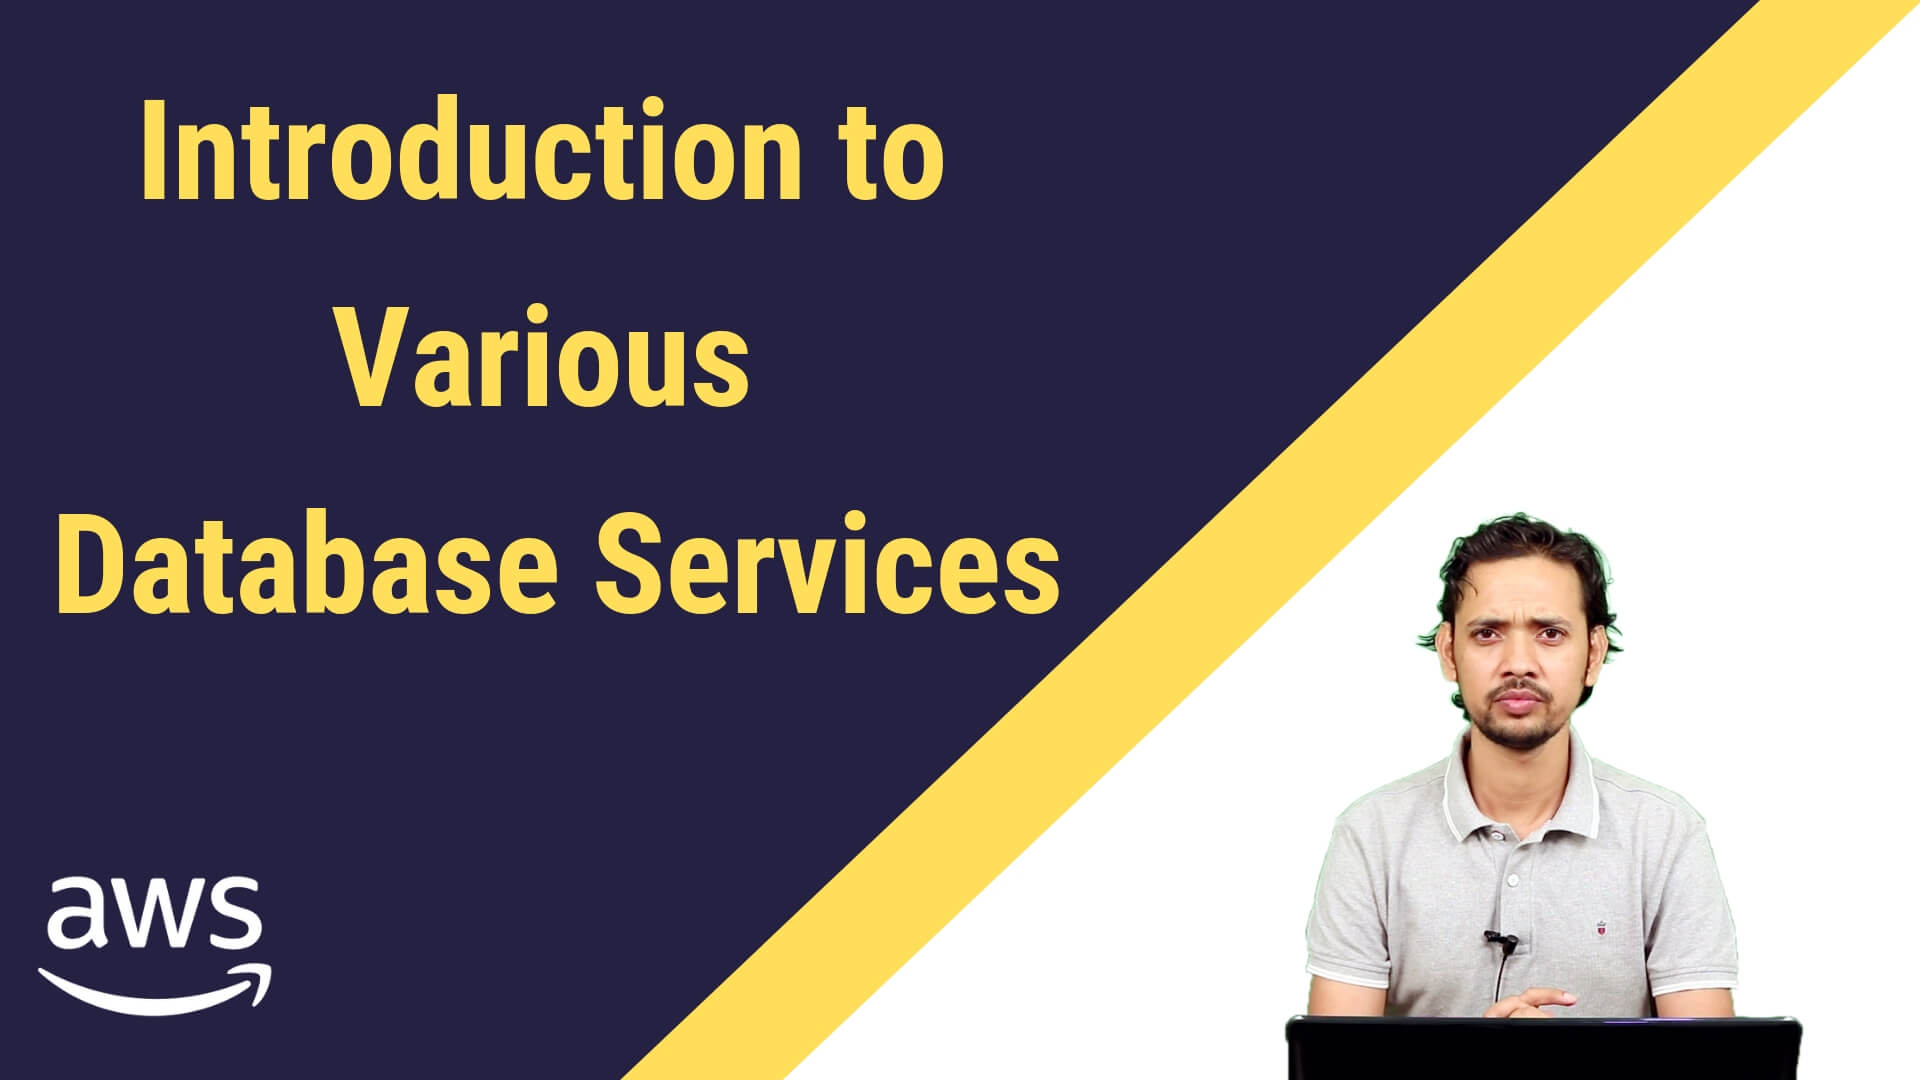 AWS Introduction to Database Services